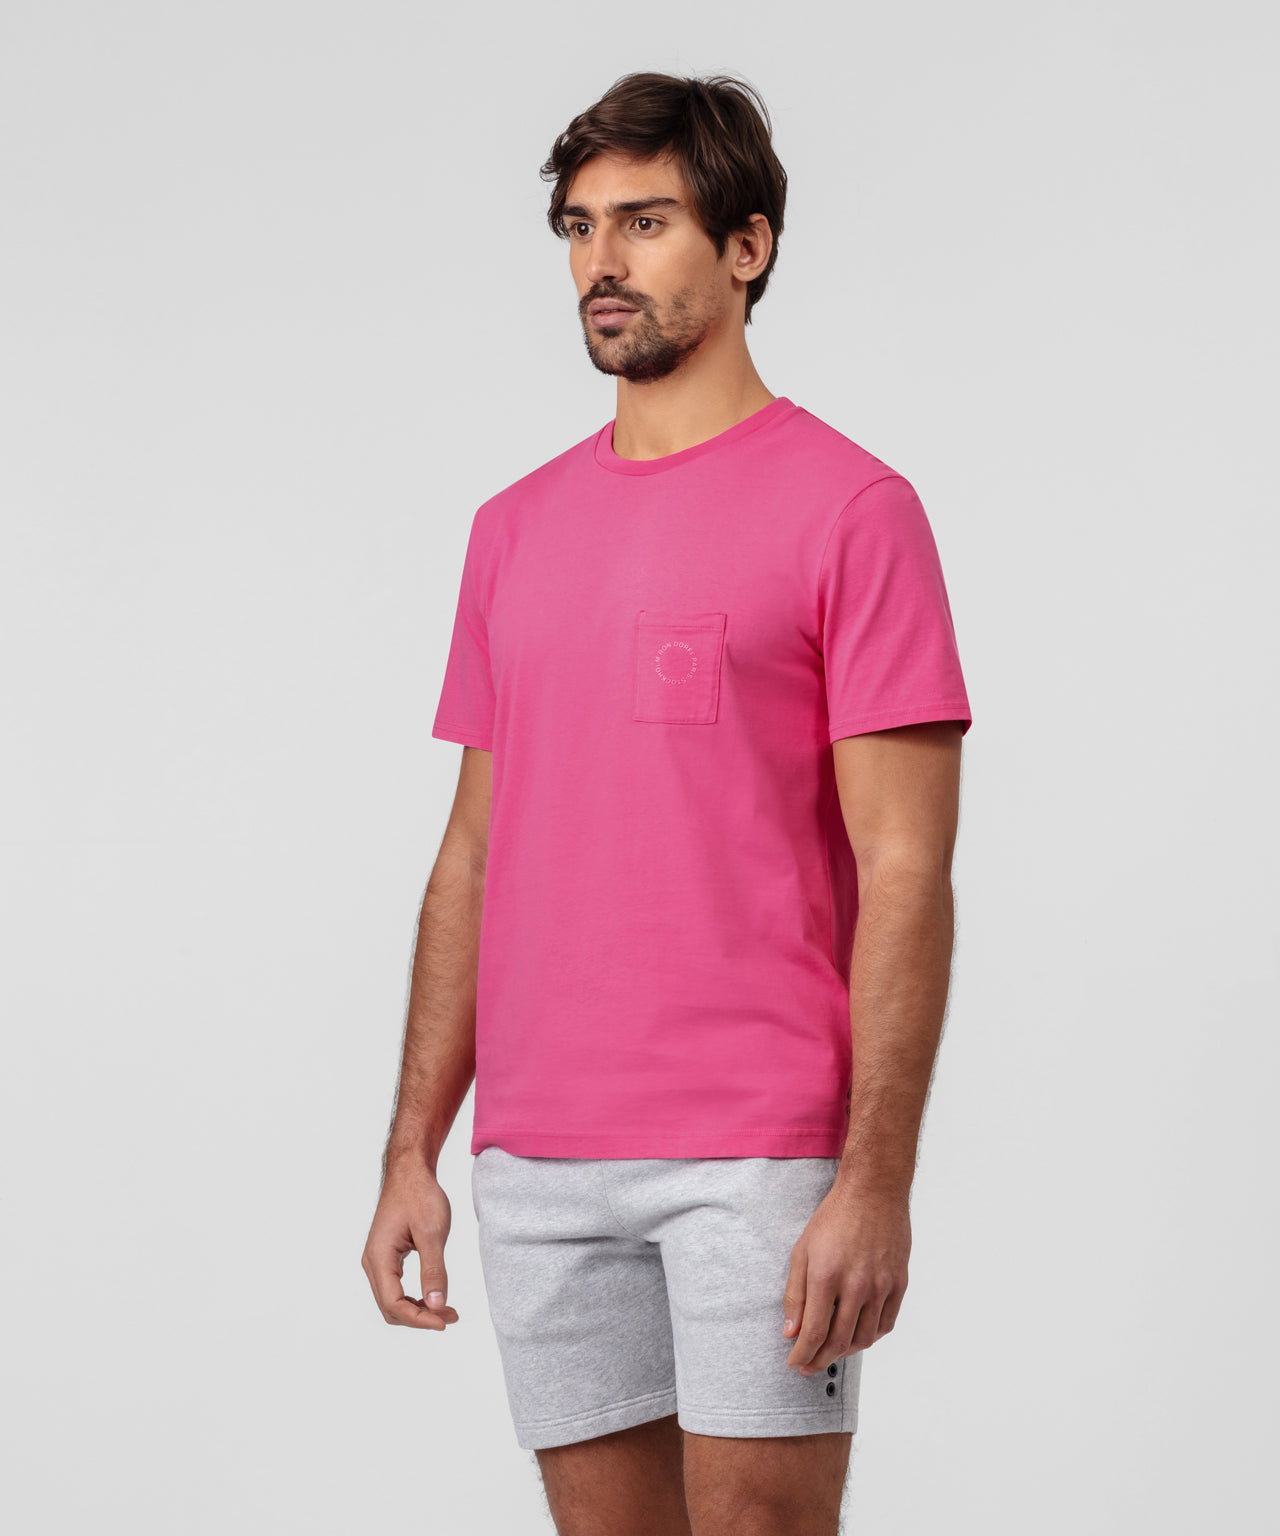 T-Shirt w Chest Pocket - hot pink